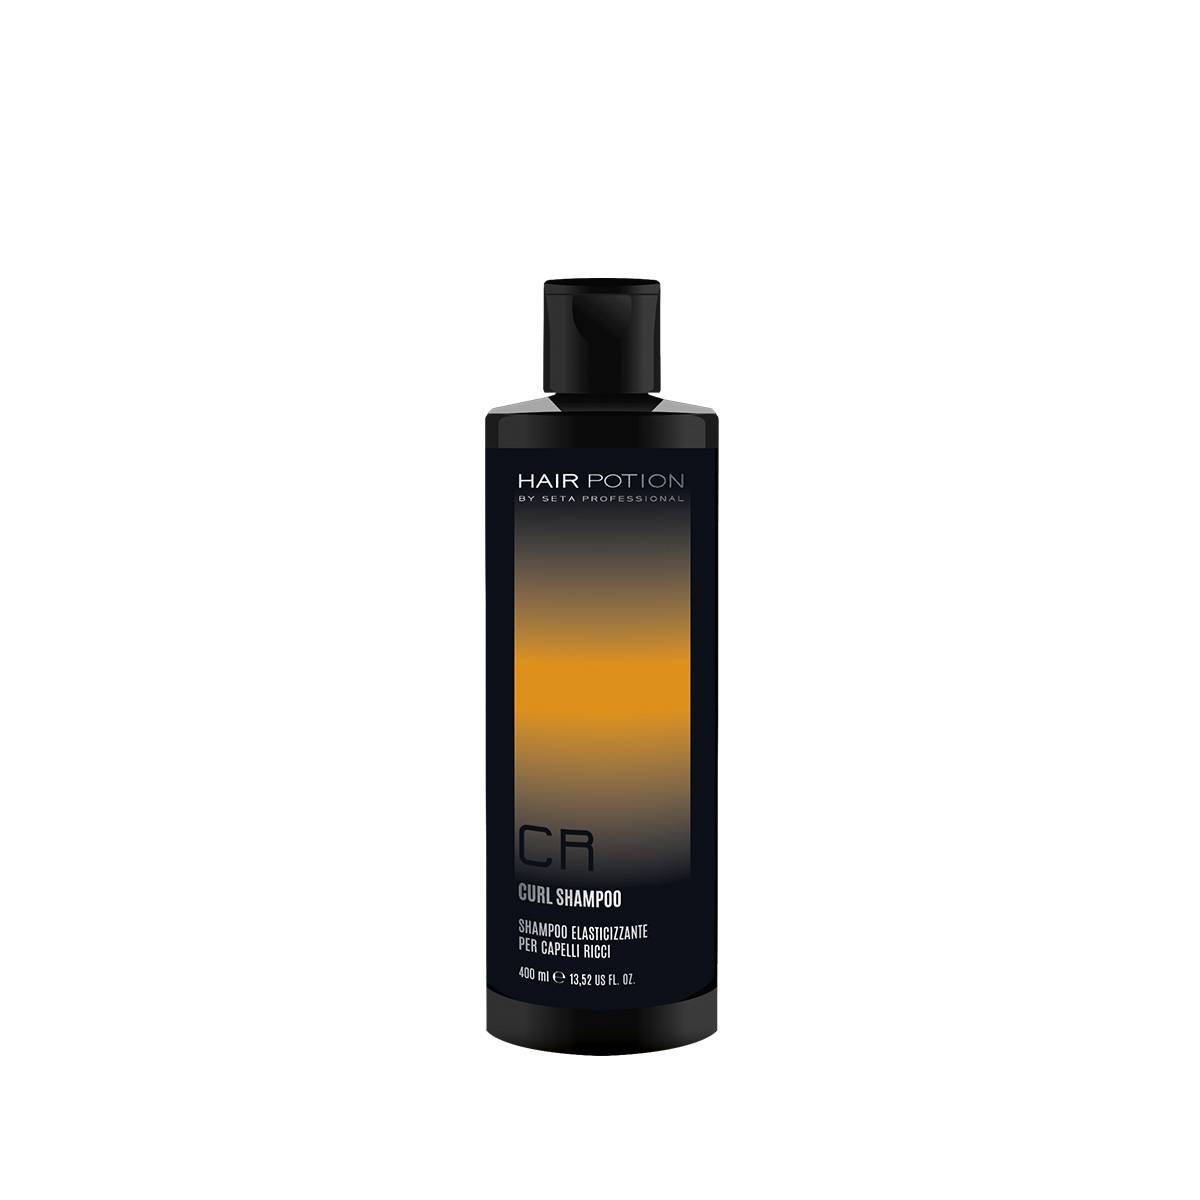 Hair Potion Pro Curl Shampoo 400ml